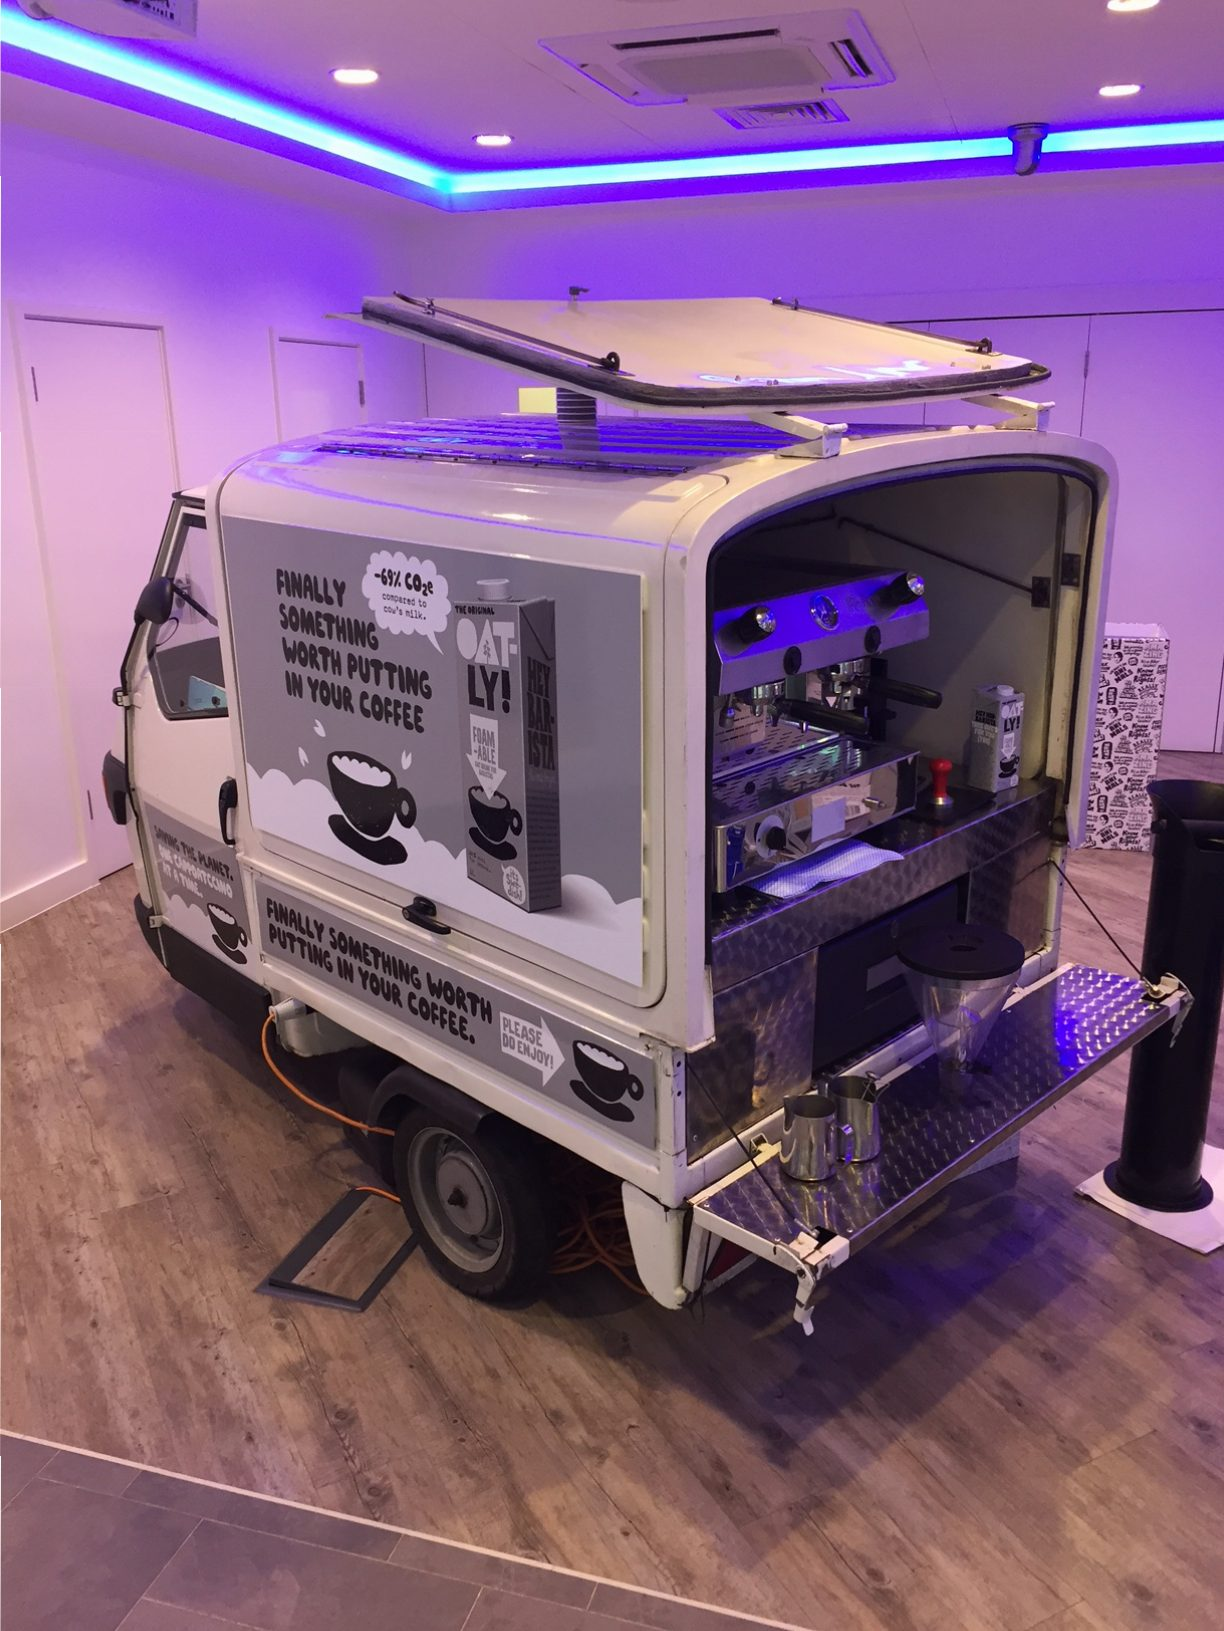 The Mobile Coffee Bean Oatly vegan milk branded mobile coffee van hire